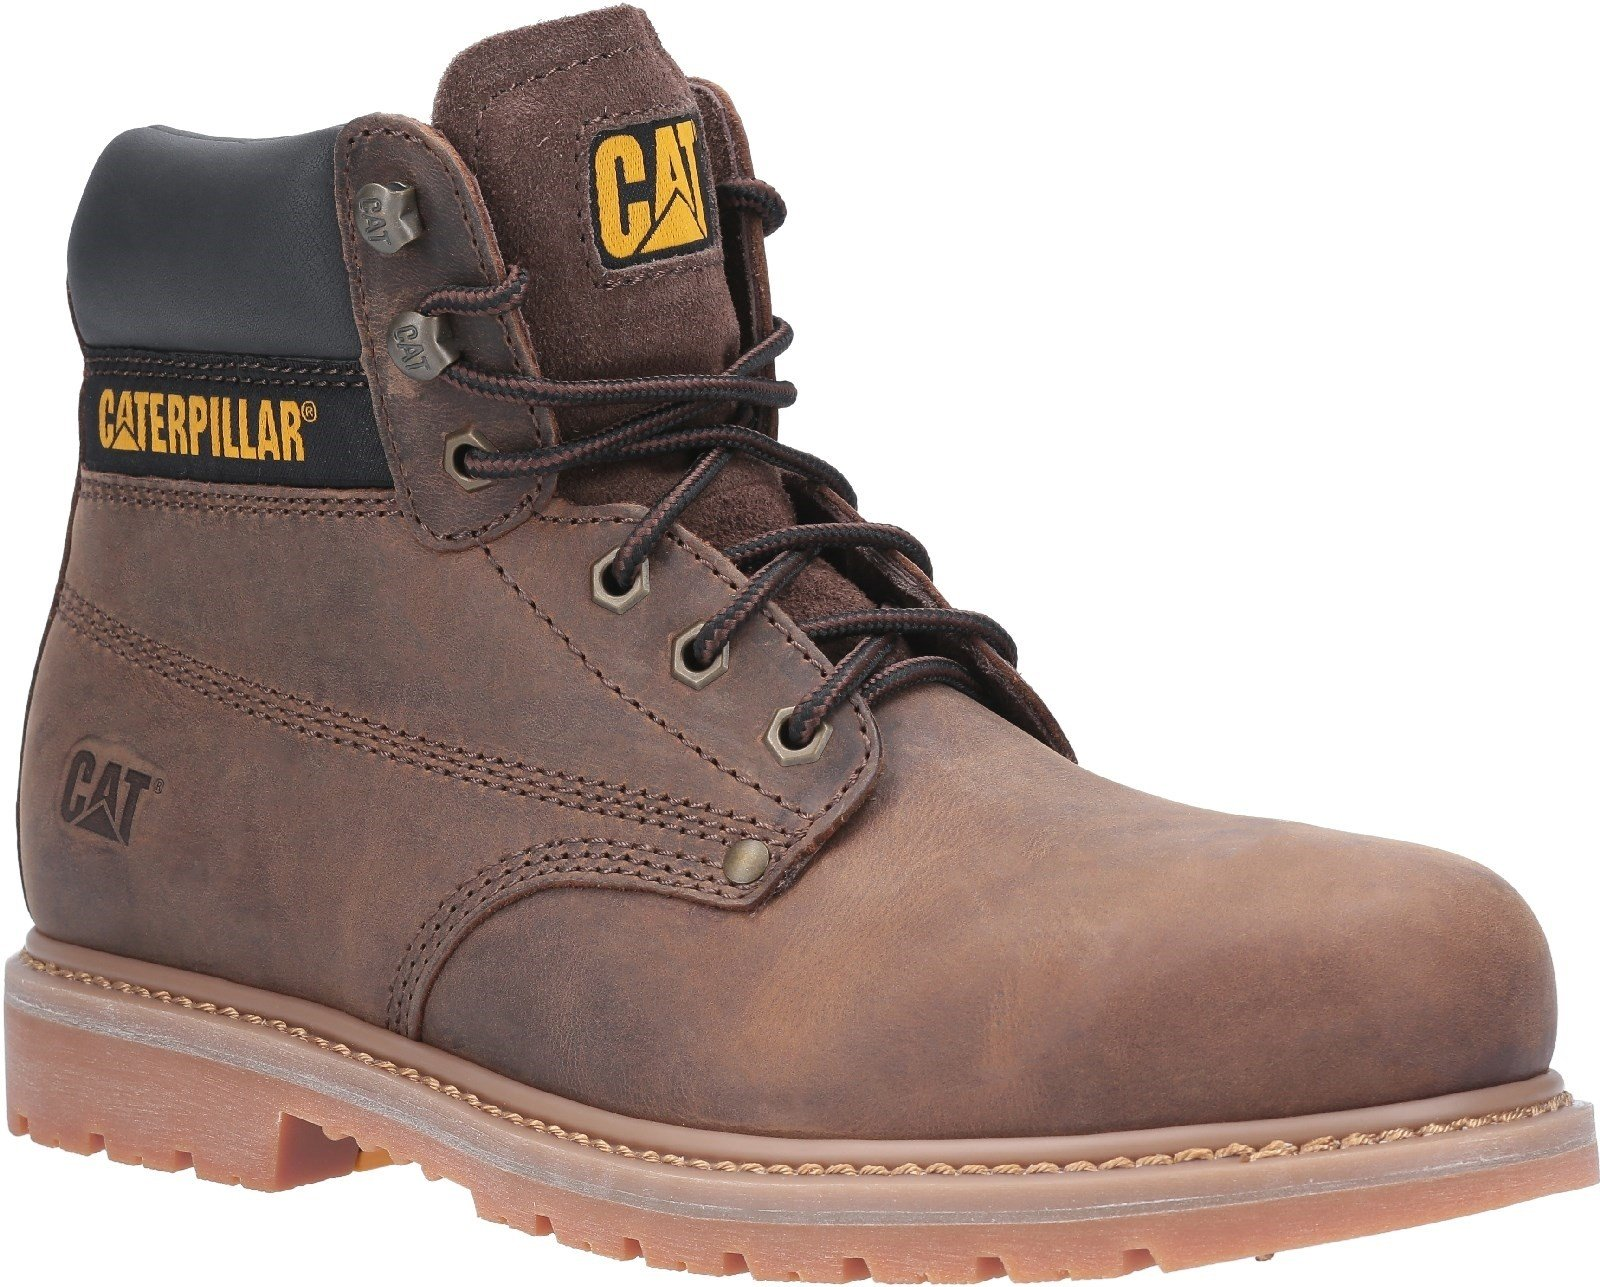 Caterpillar Men's Powerplant GYW Safety Boot Various Colours 30178 - Brown 6